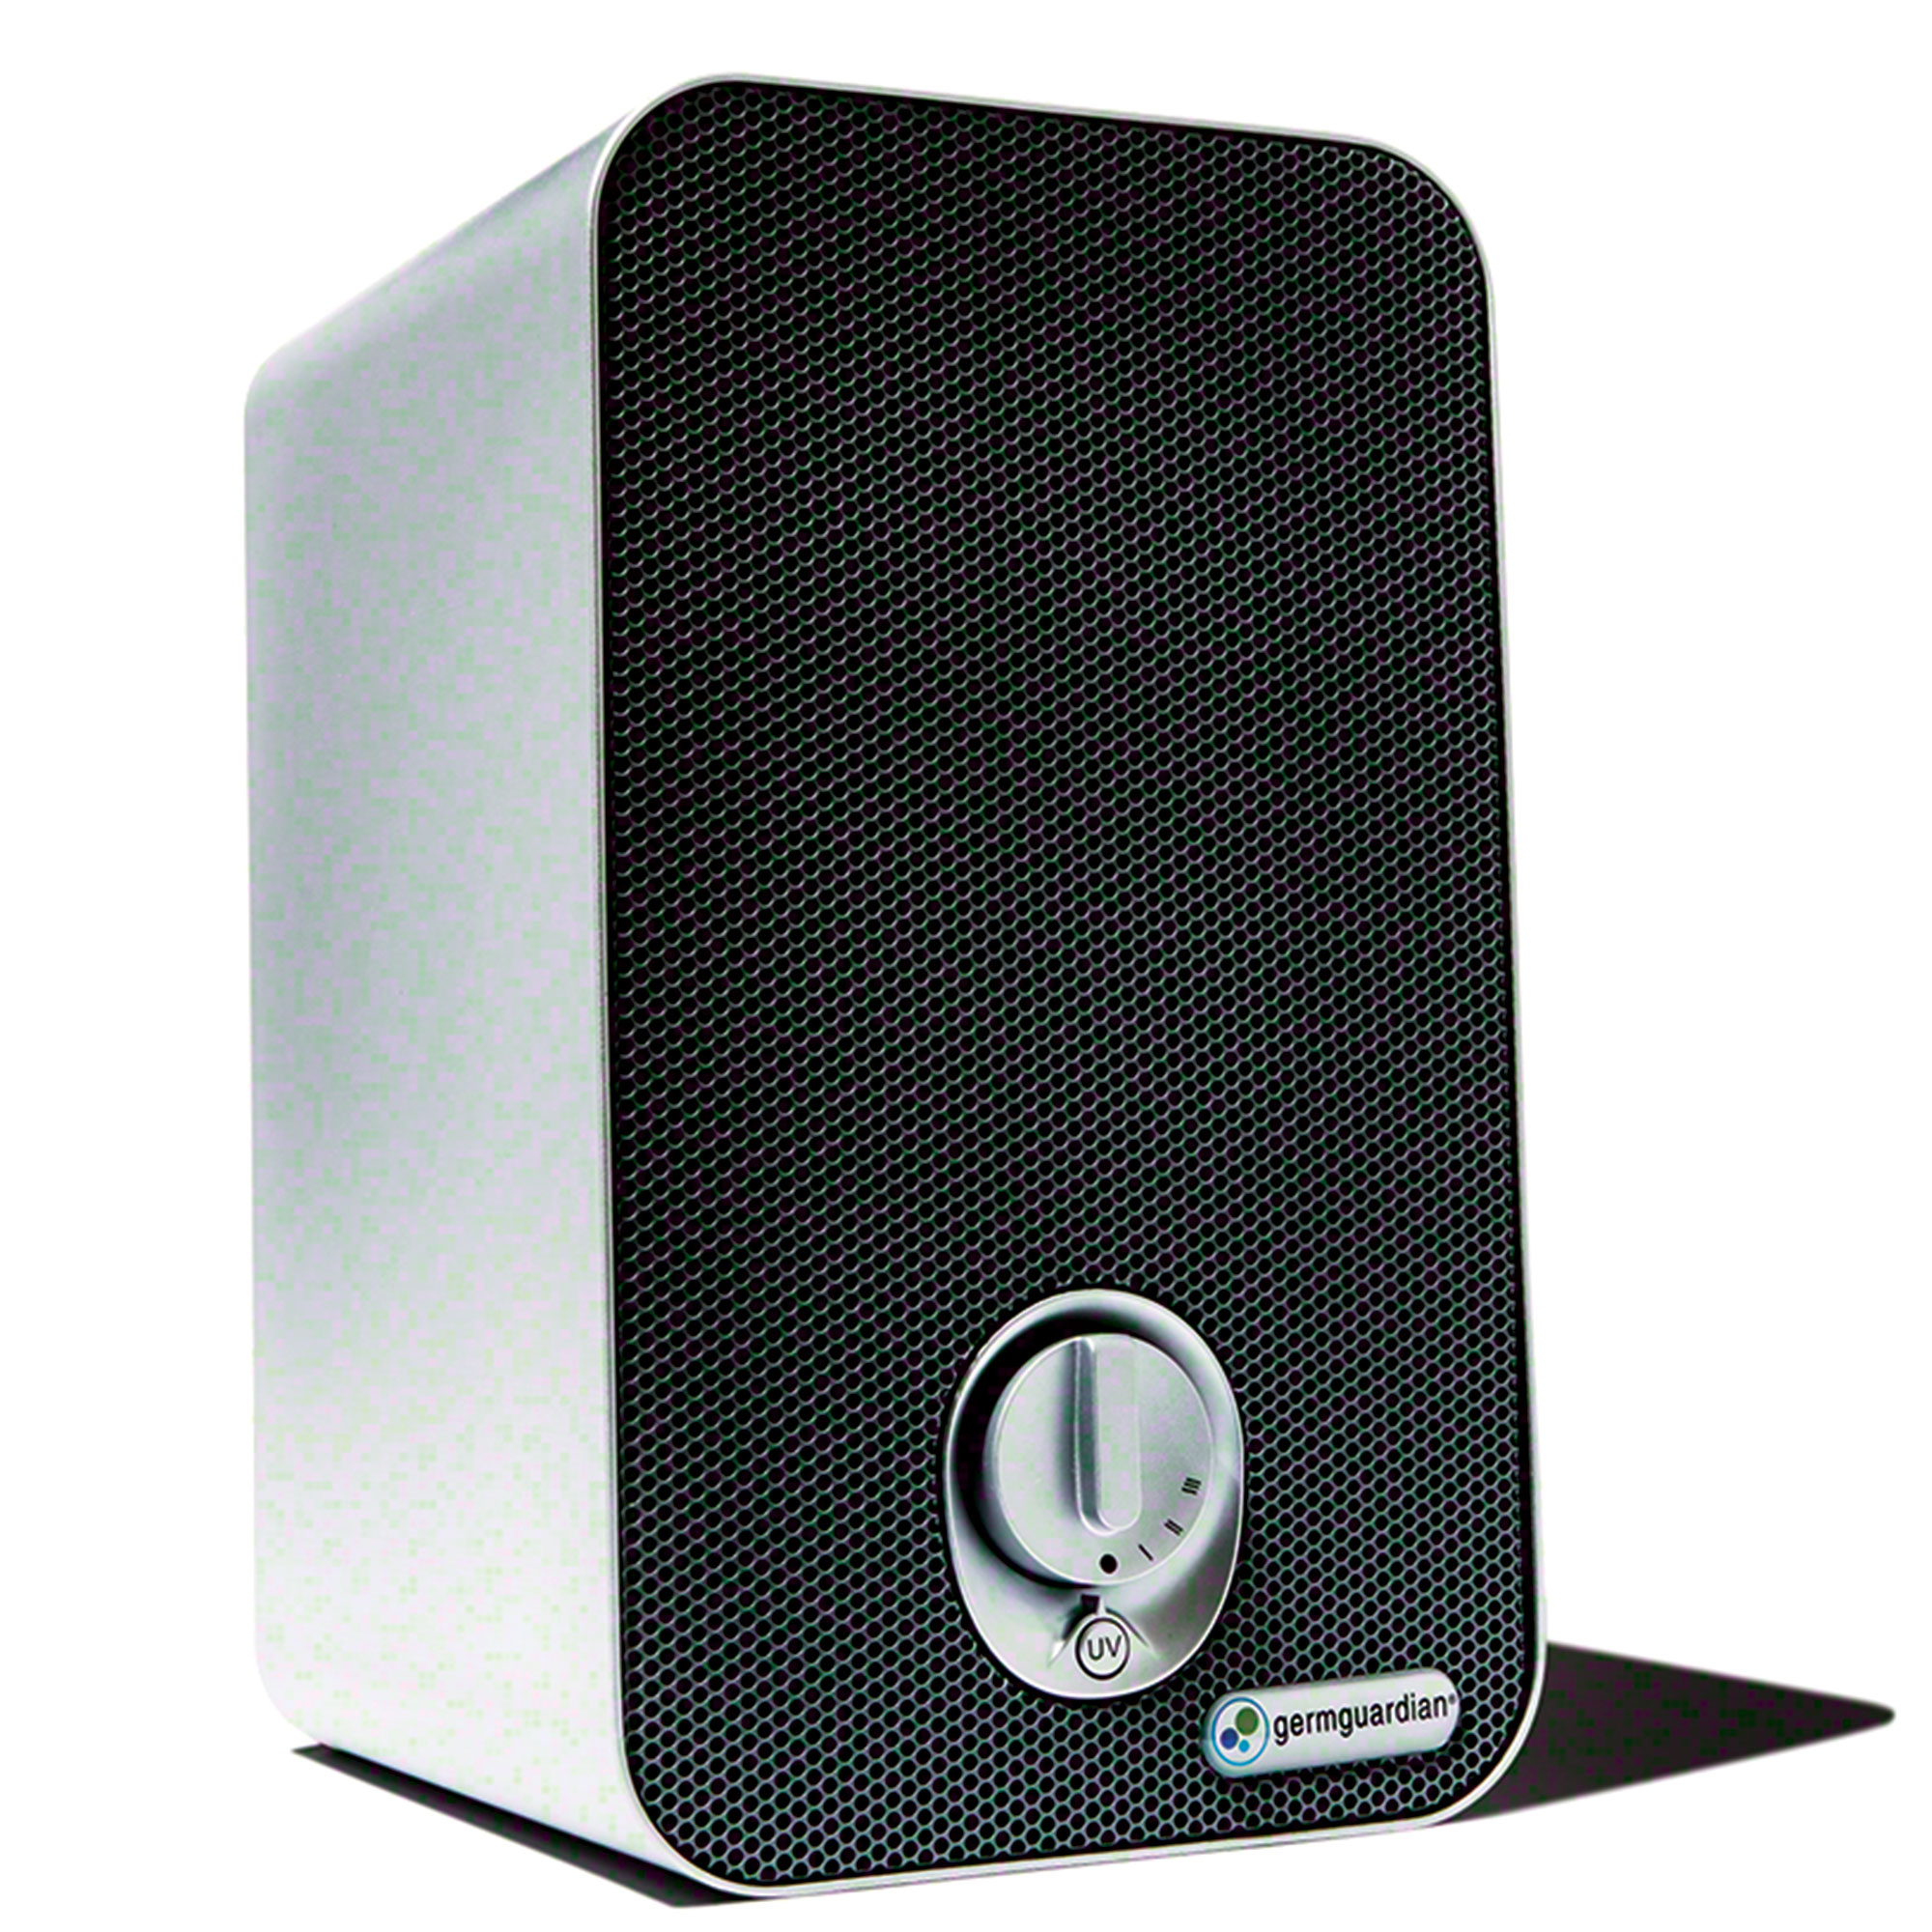 GermGuardian 3-in-1 HEPA Table Top Air Purifier and UV Sanitizer